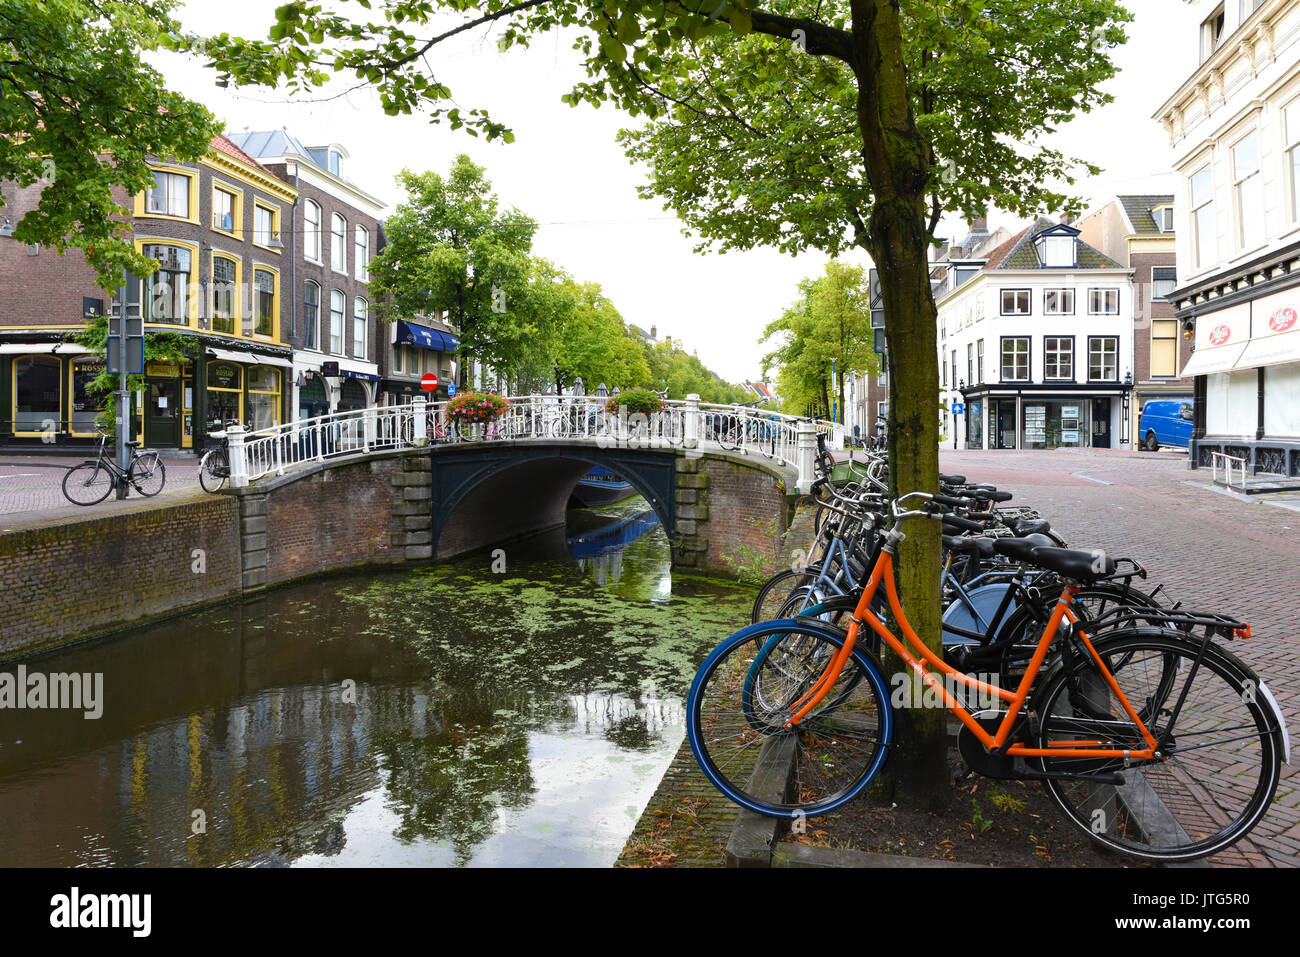 A quiet canal in Delft, South Holland, The Netherlands - Stock Image